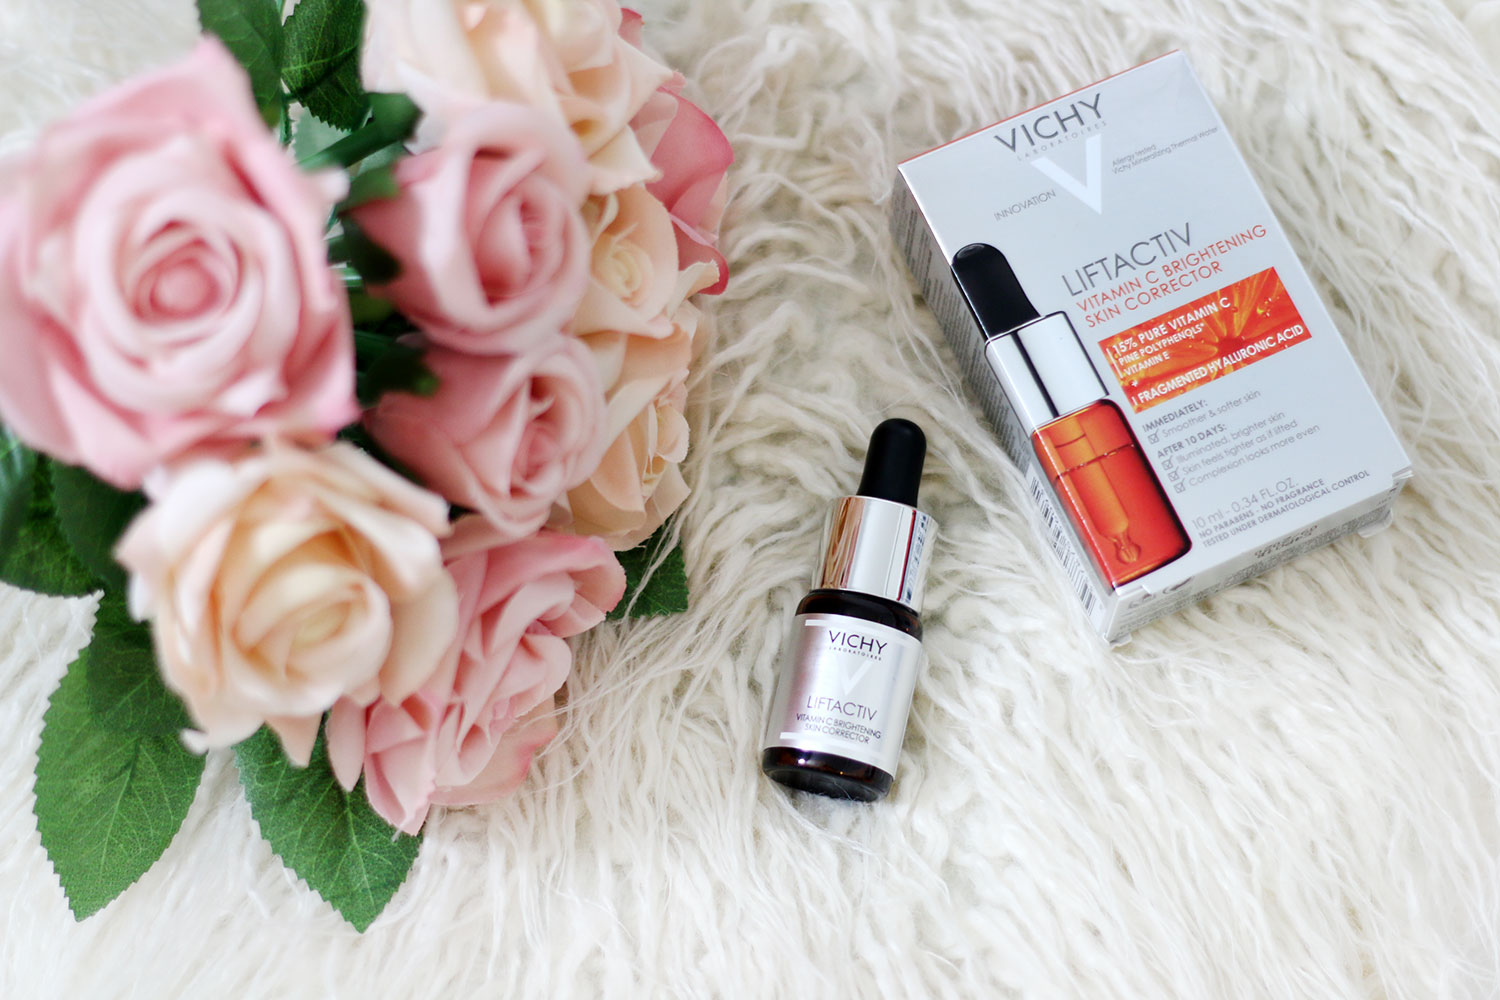 Vichy LiftActiv Vitamin C Serum